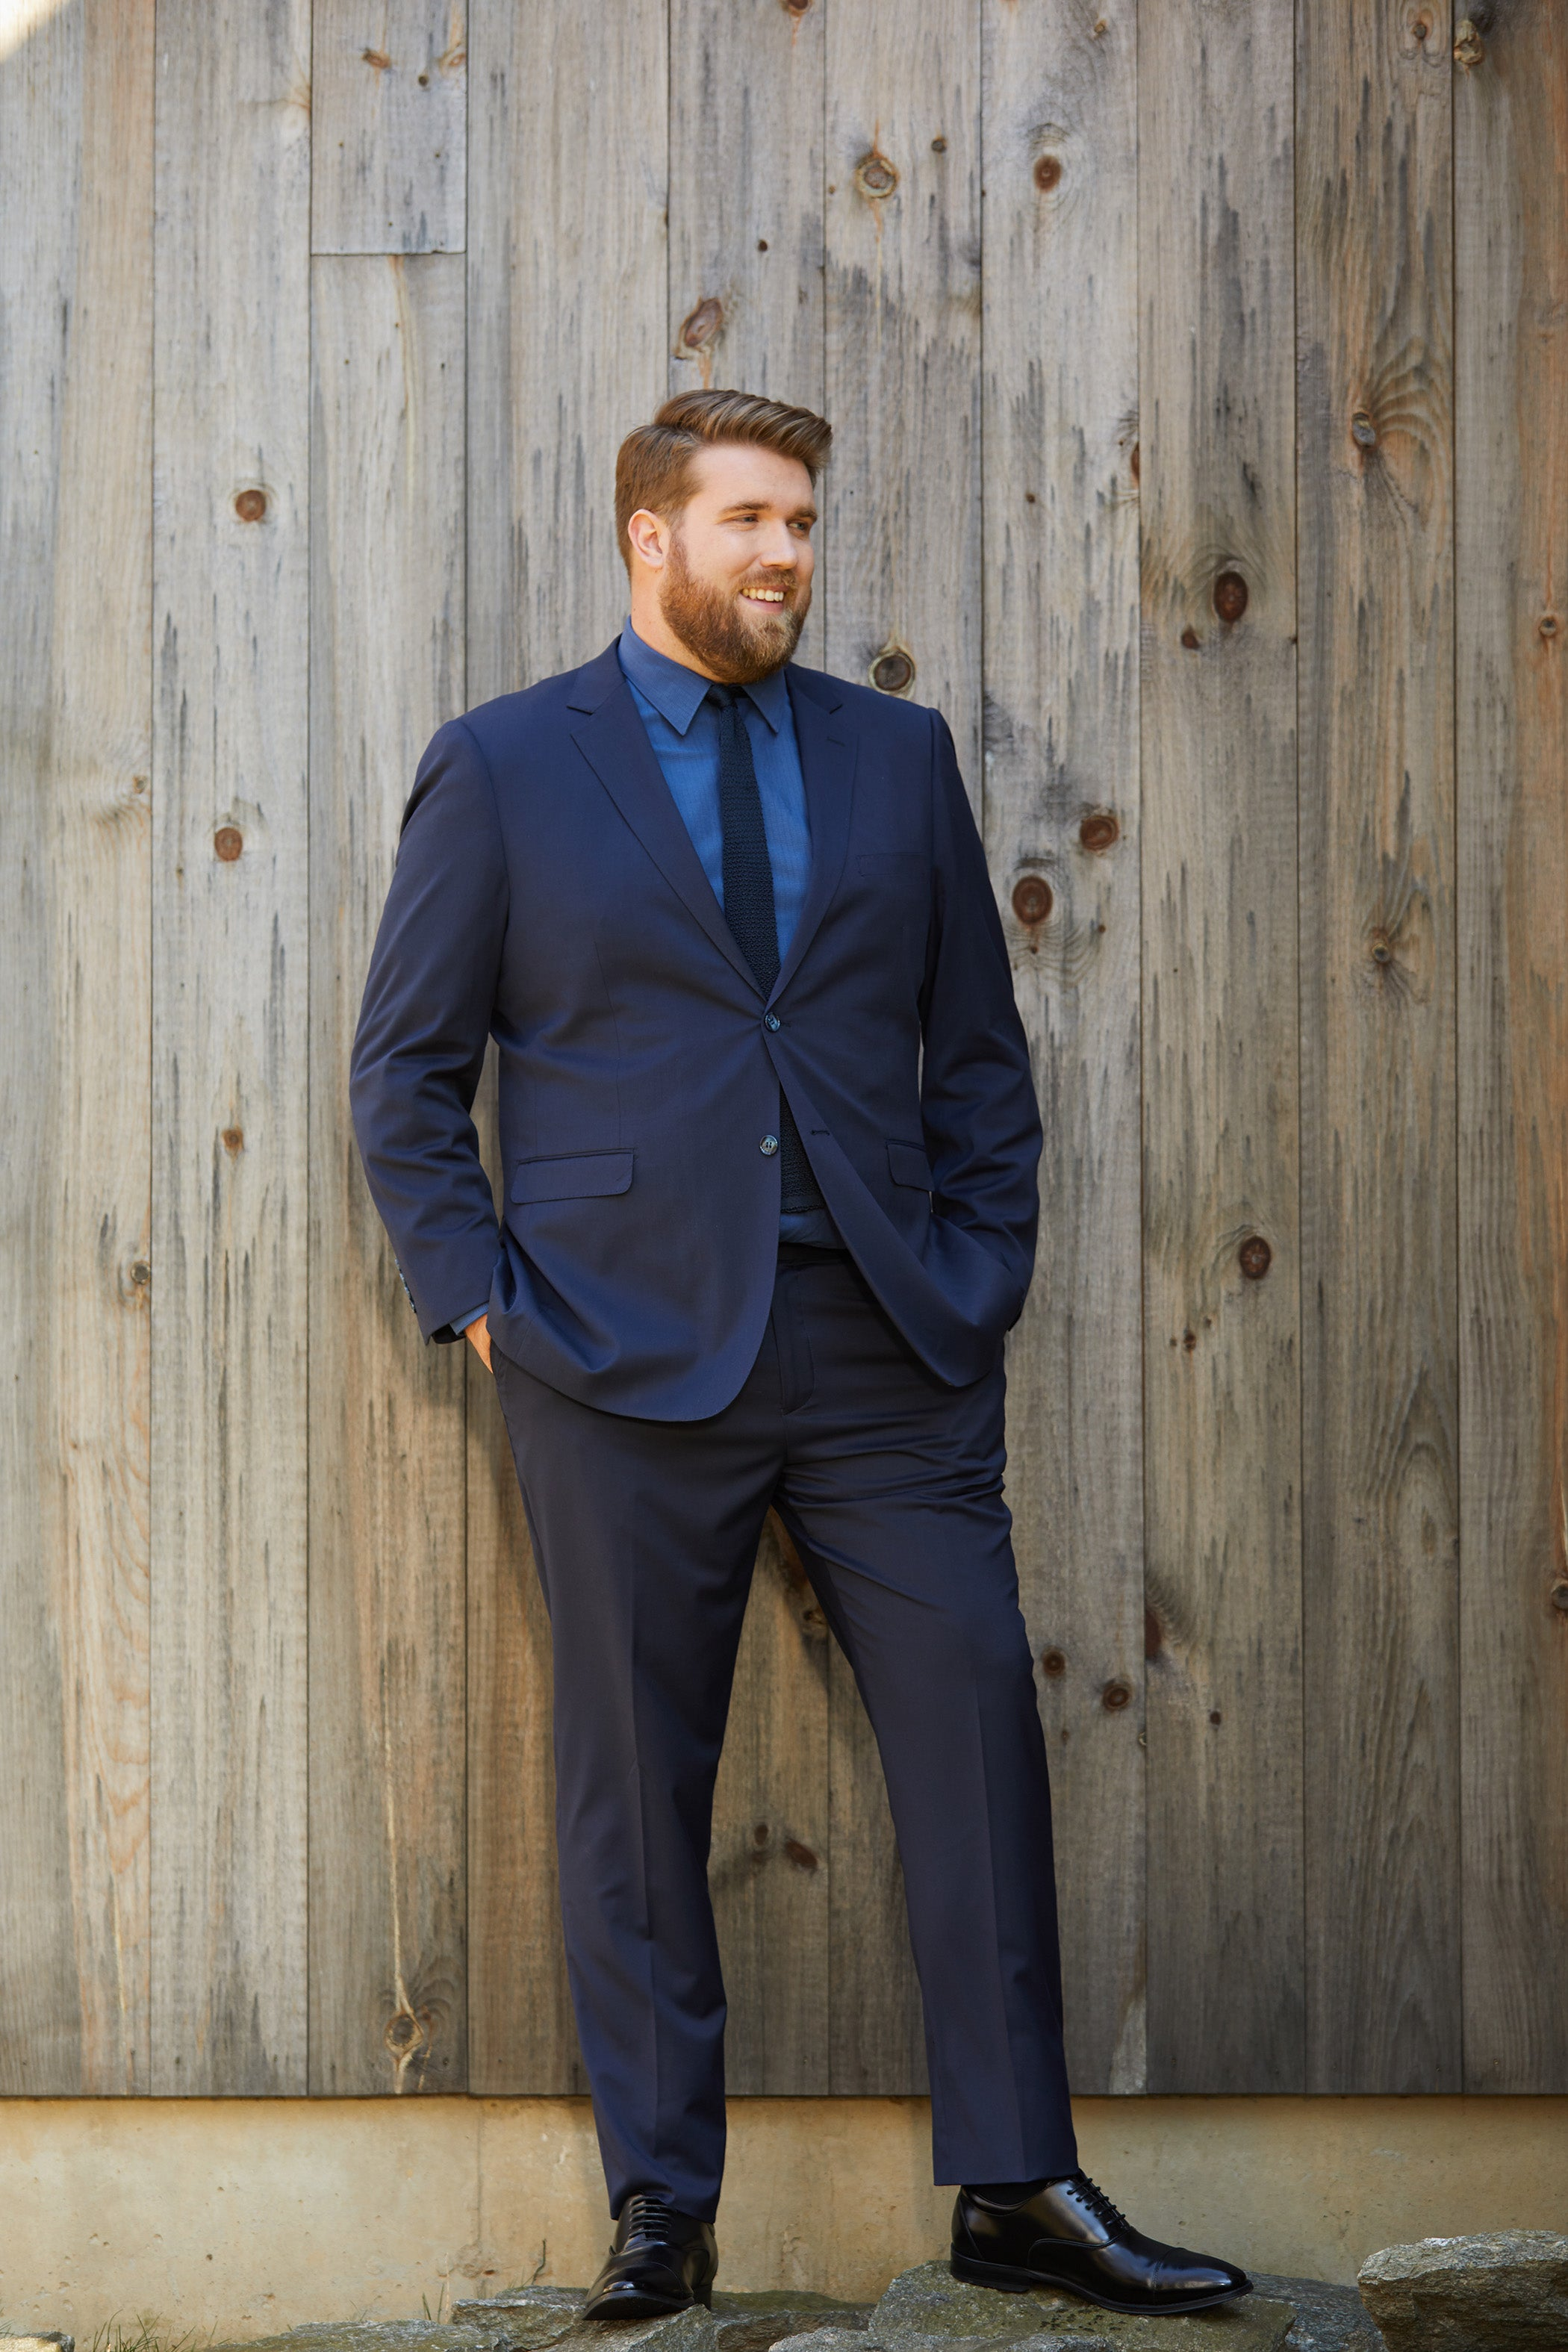 Dress codes for men's wedding guest attire